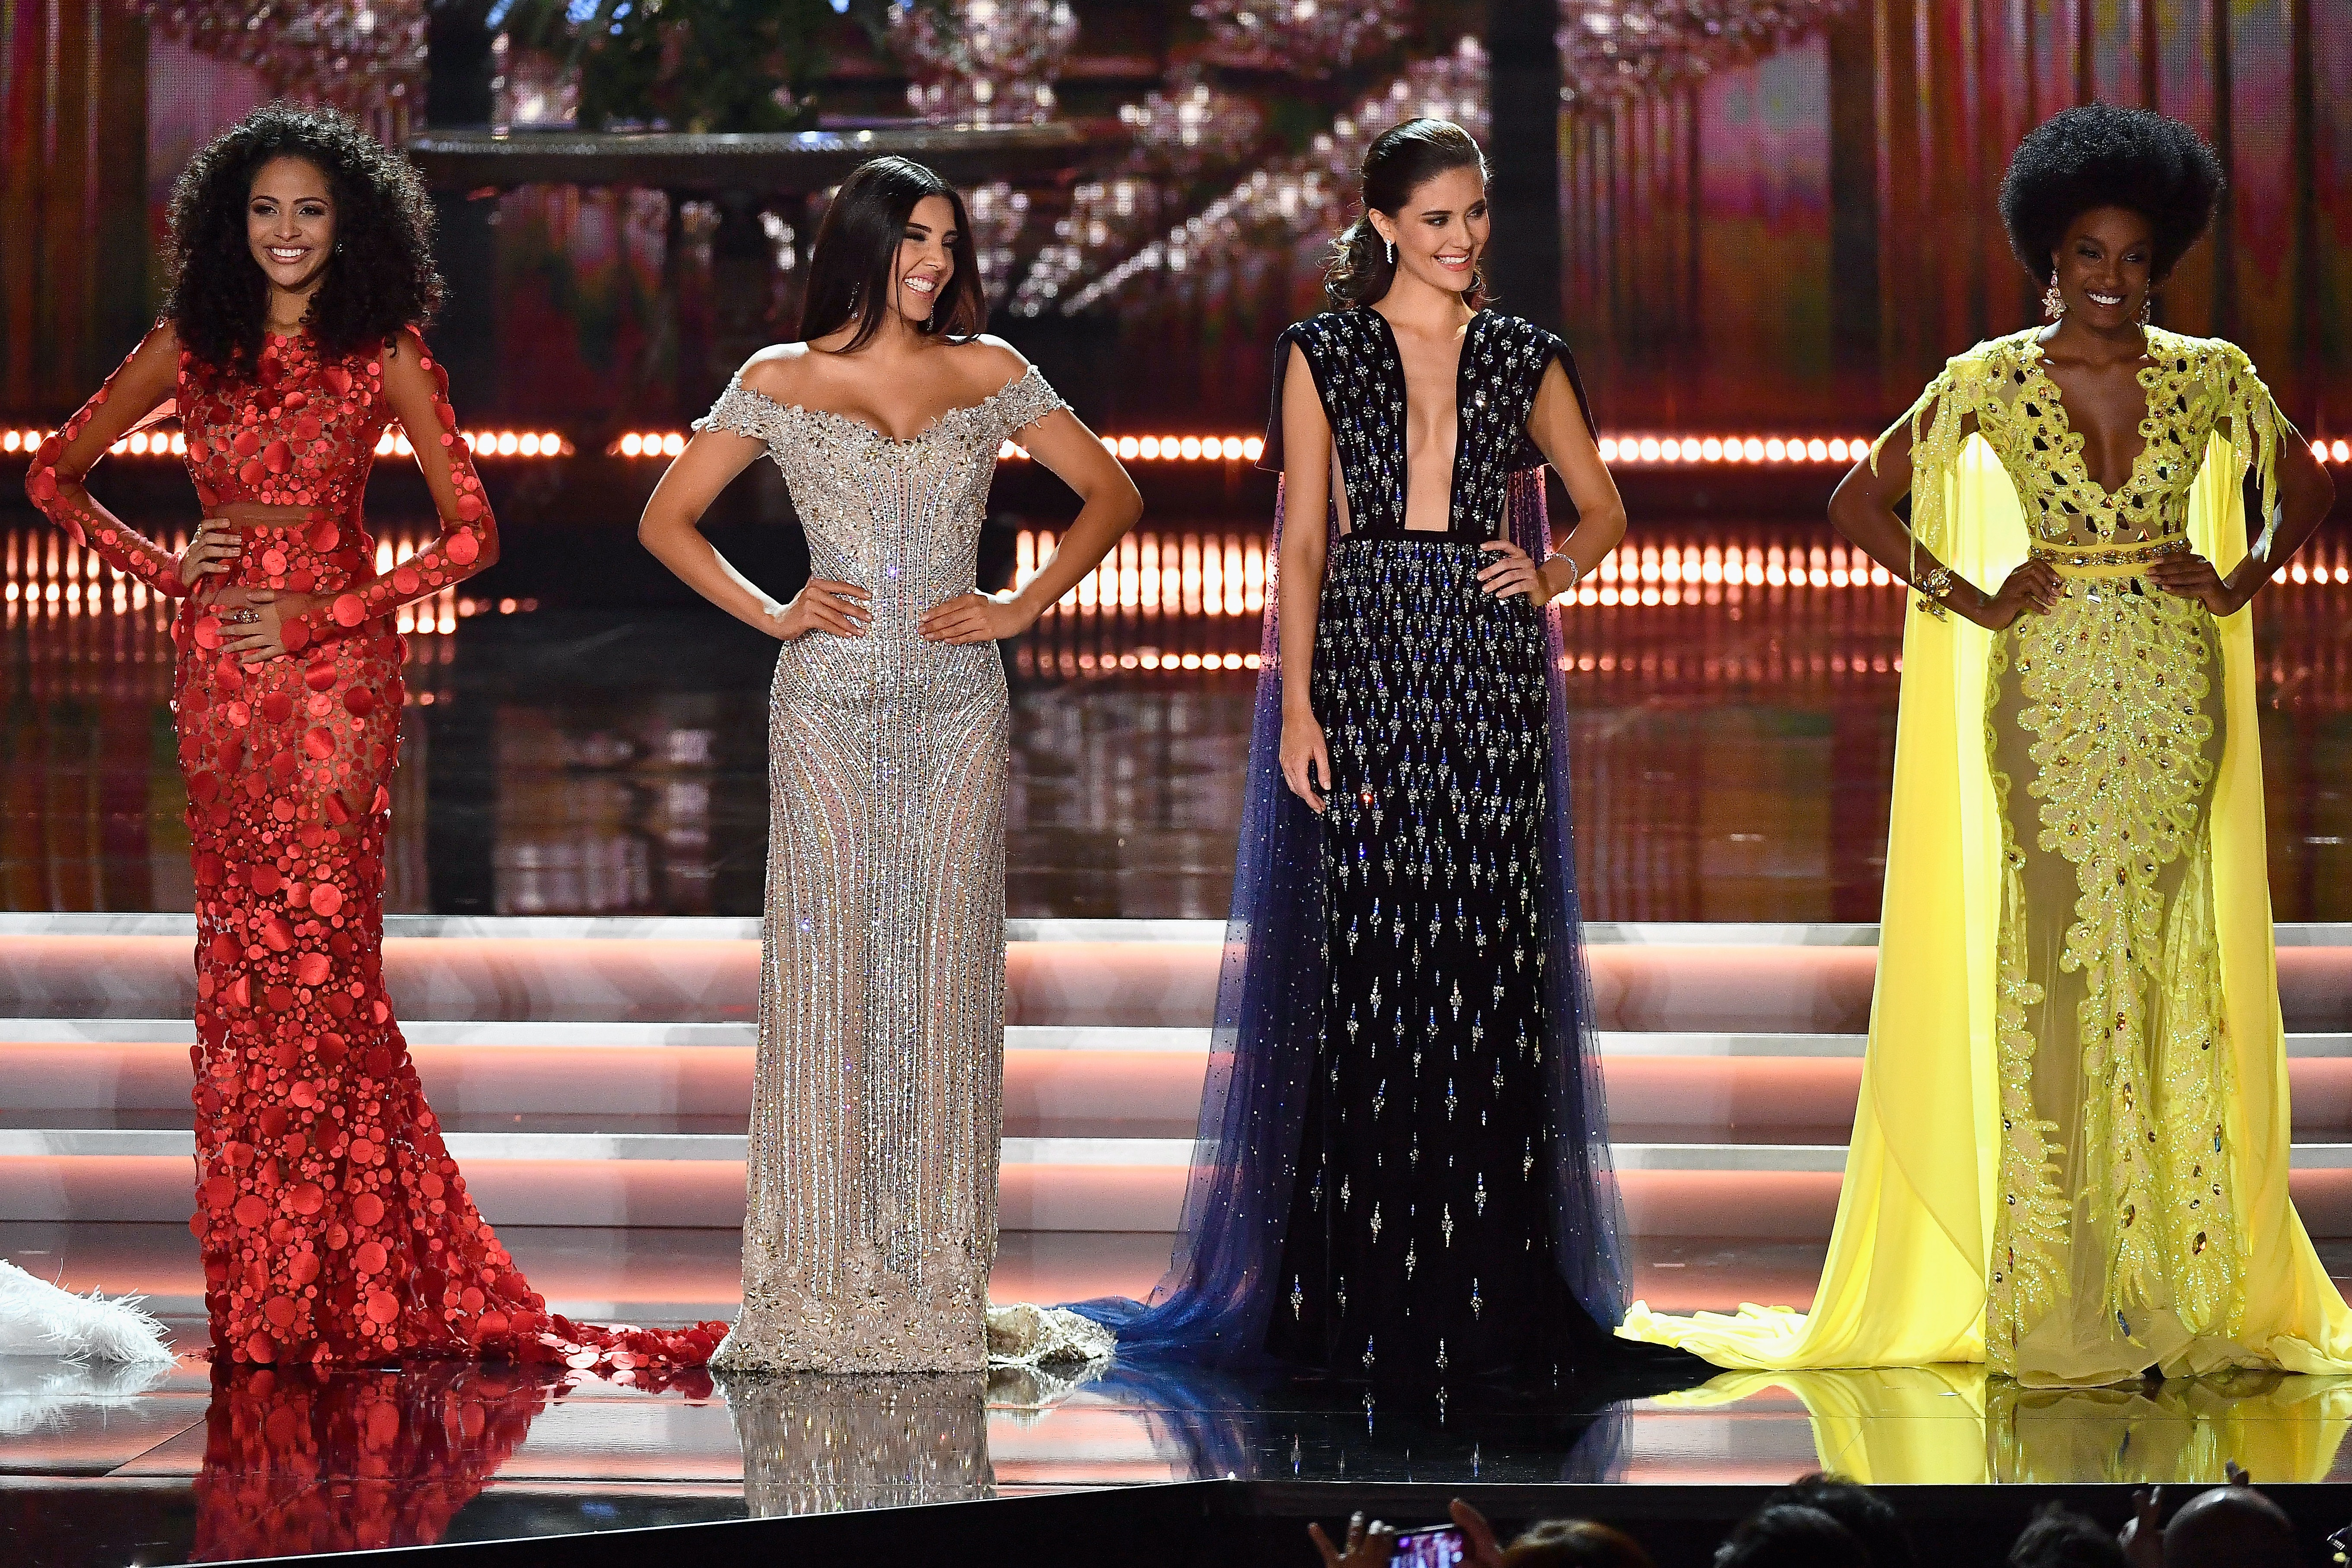 These Twitter Reactions To The Miss Universe 2017 Gowns Prove Fans ...